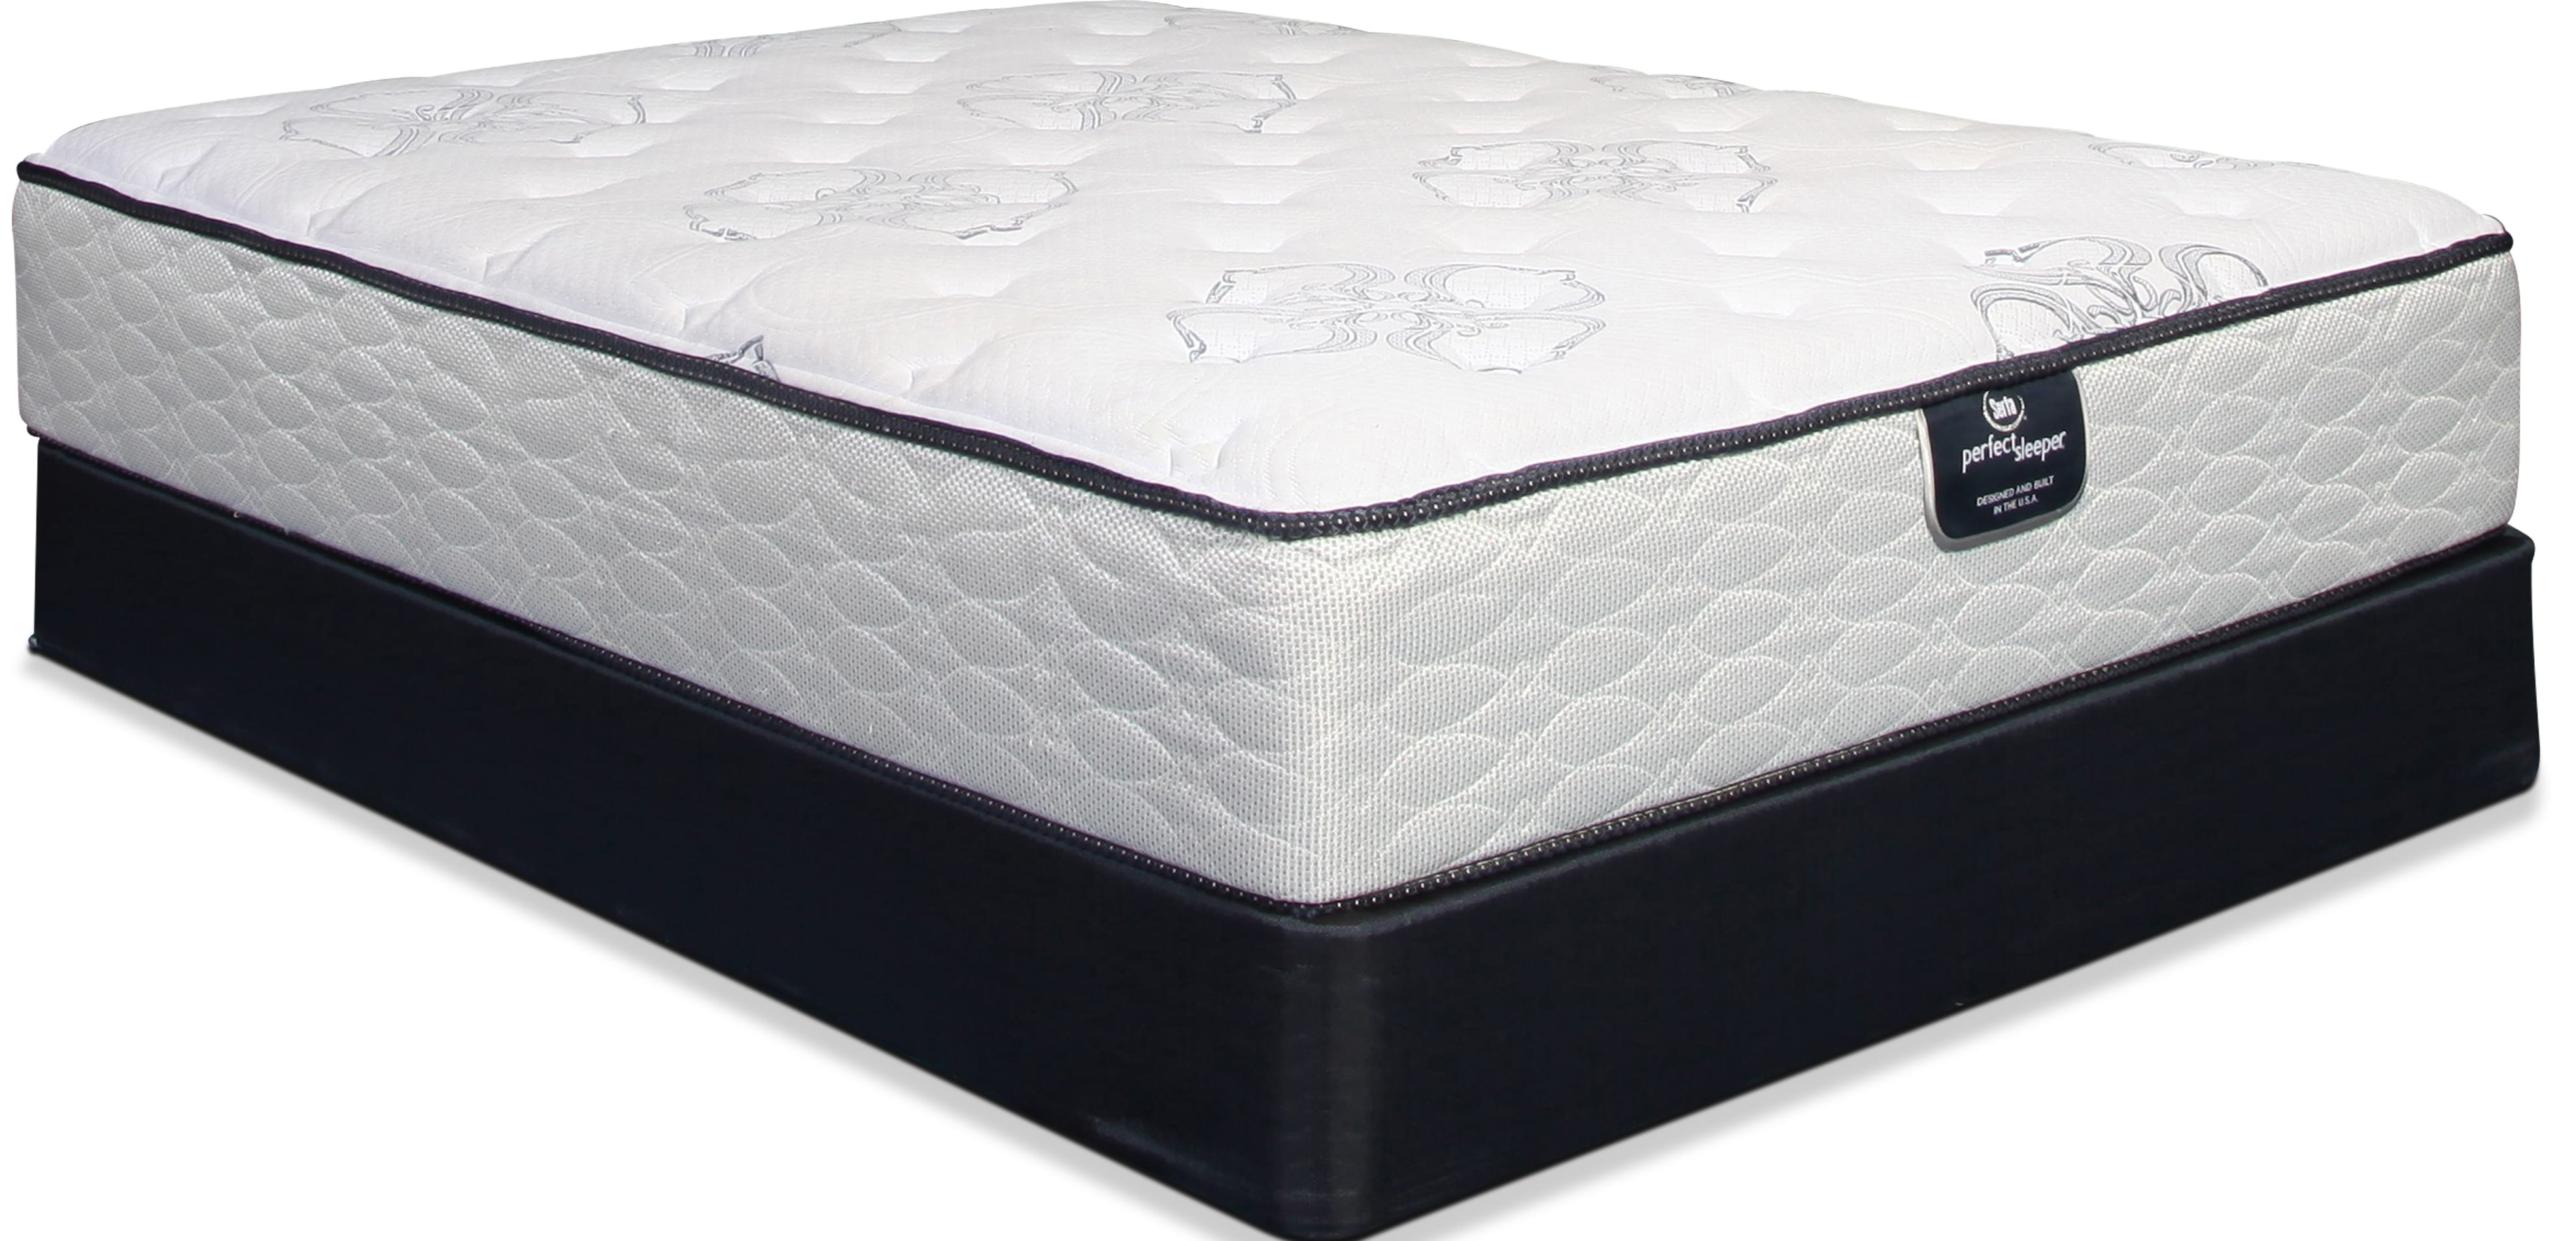 Serta Perfect Sleeper Cushion Firm Queen Mattress and Split Boxsprings